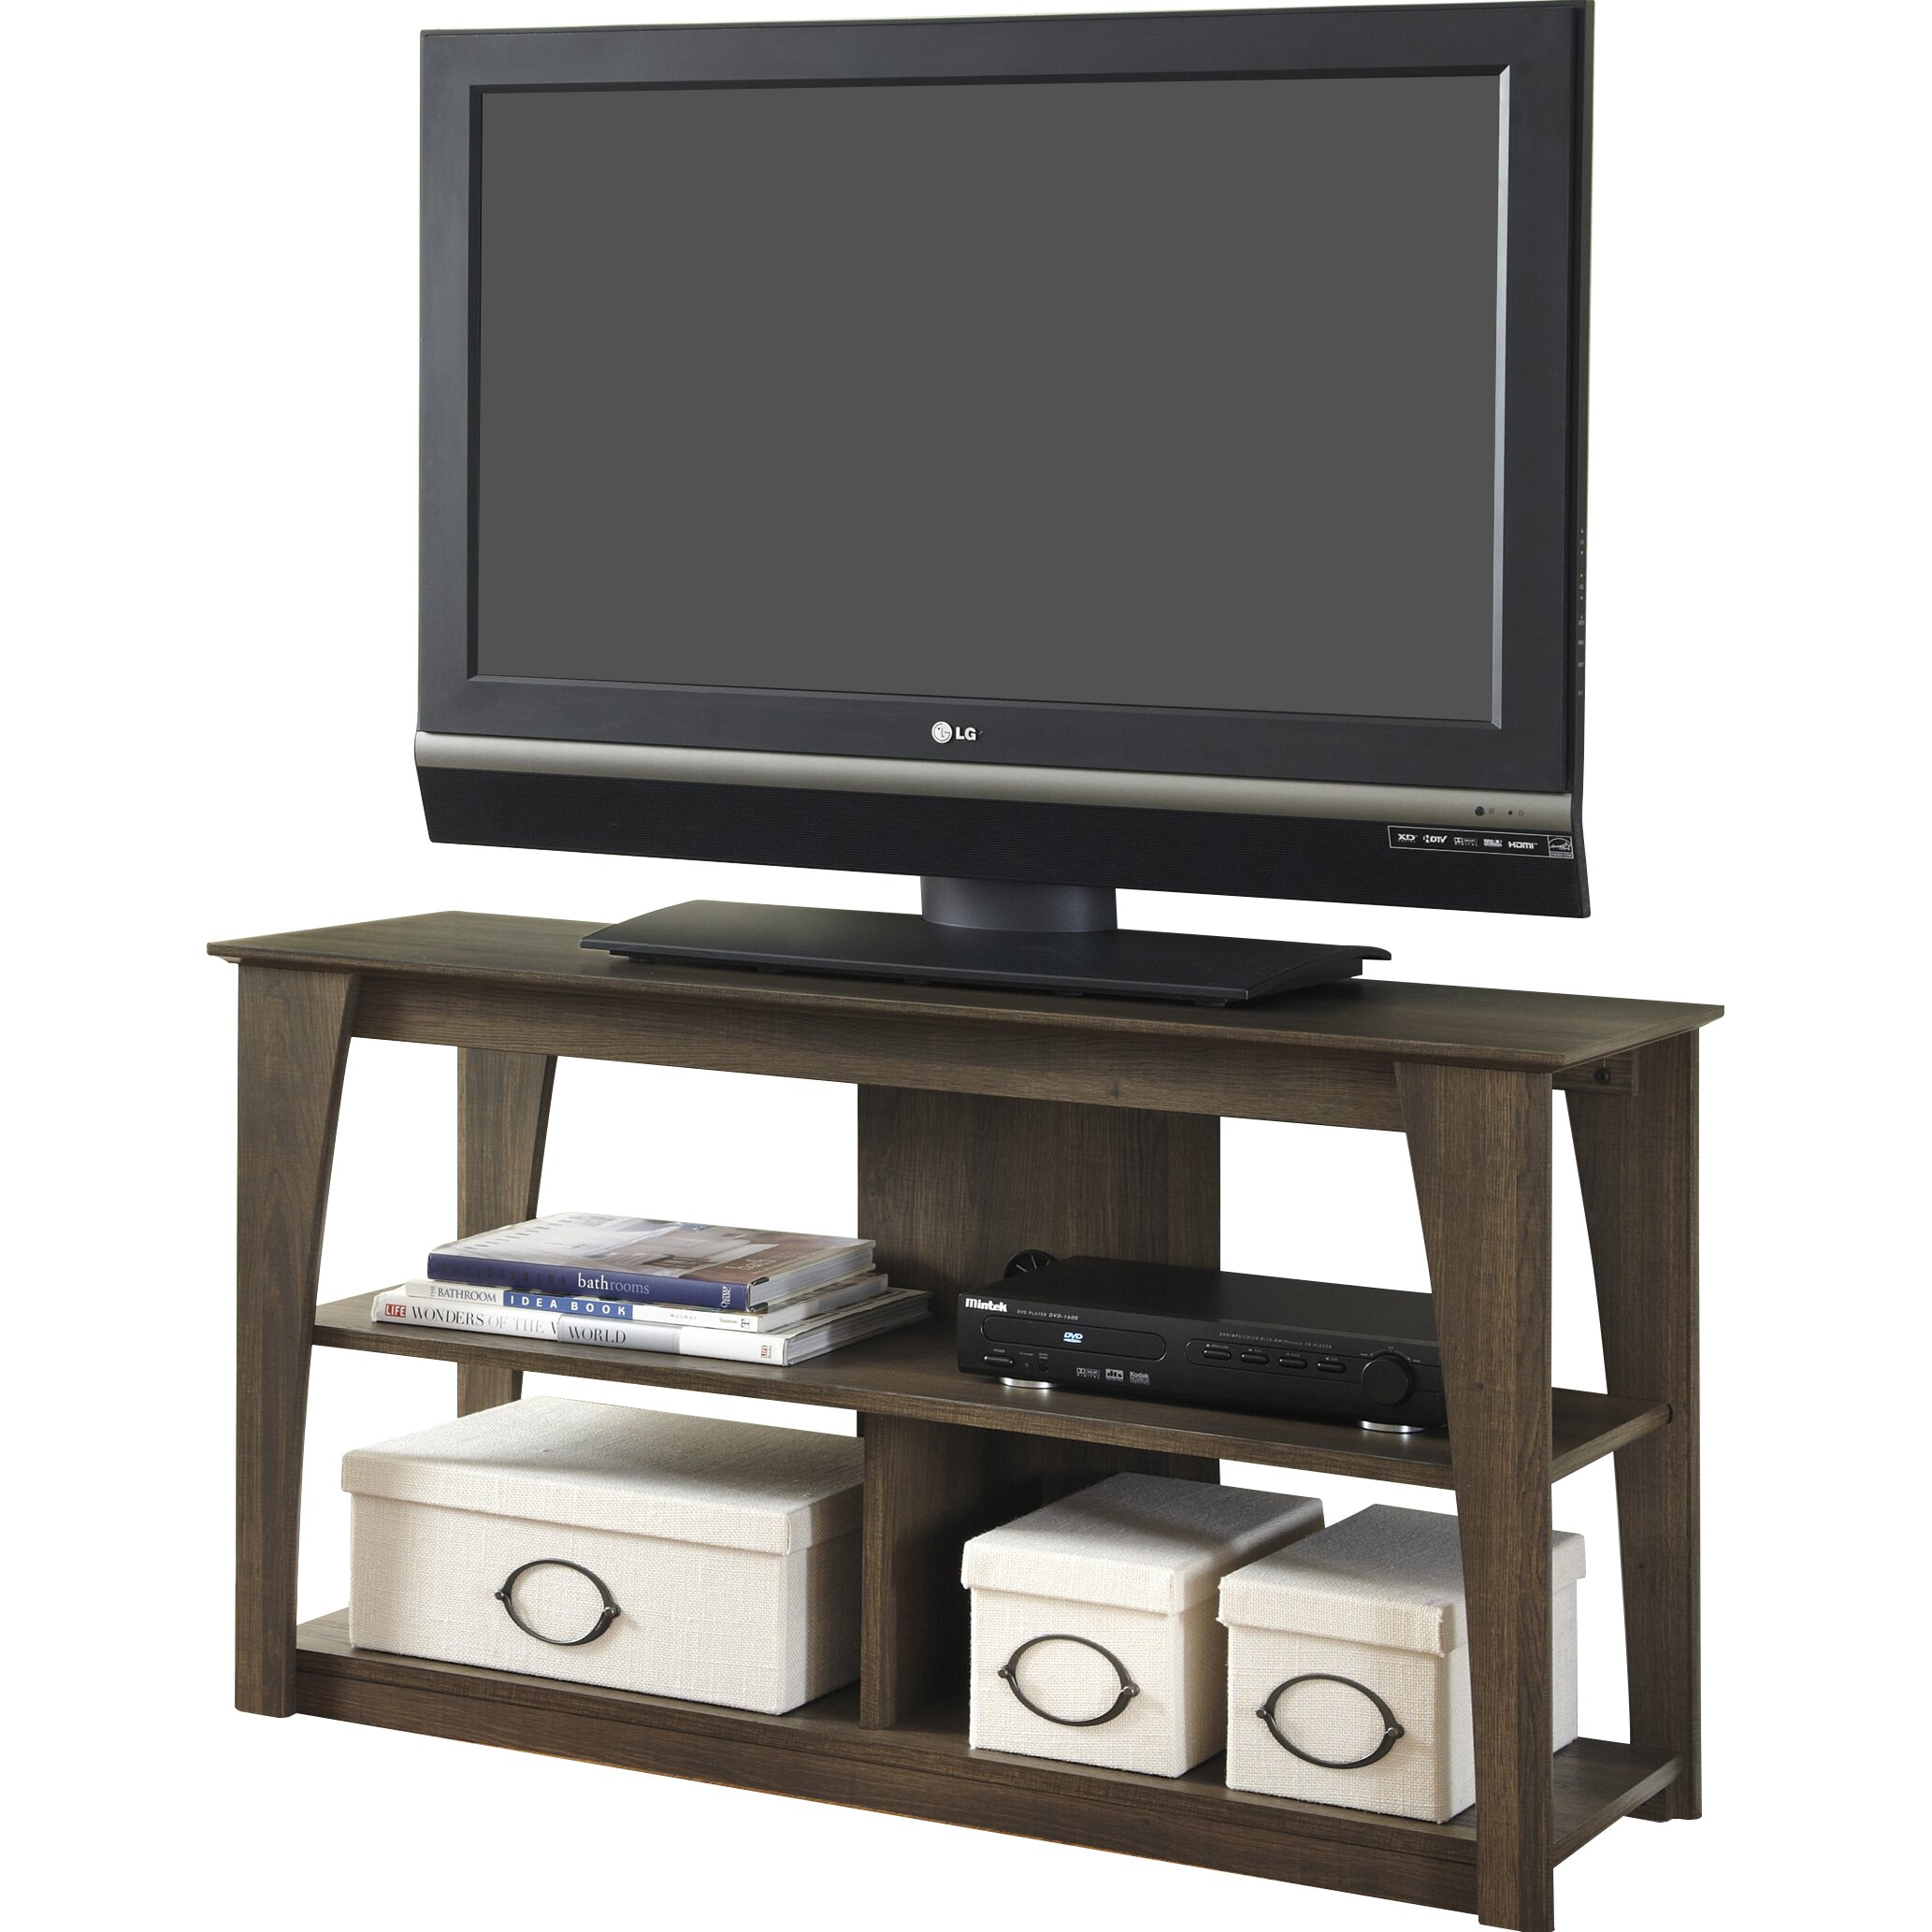 Signature Design By Ashley Tv Stand Reviews Wayfair Supply